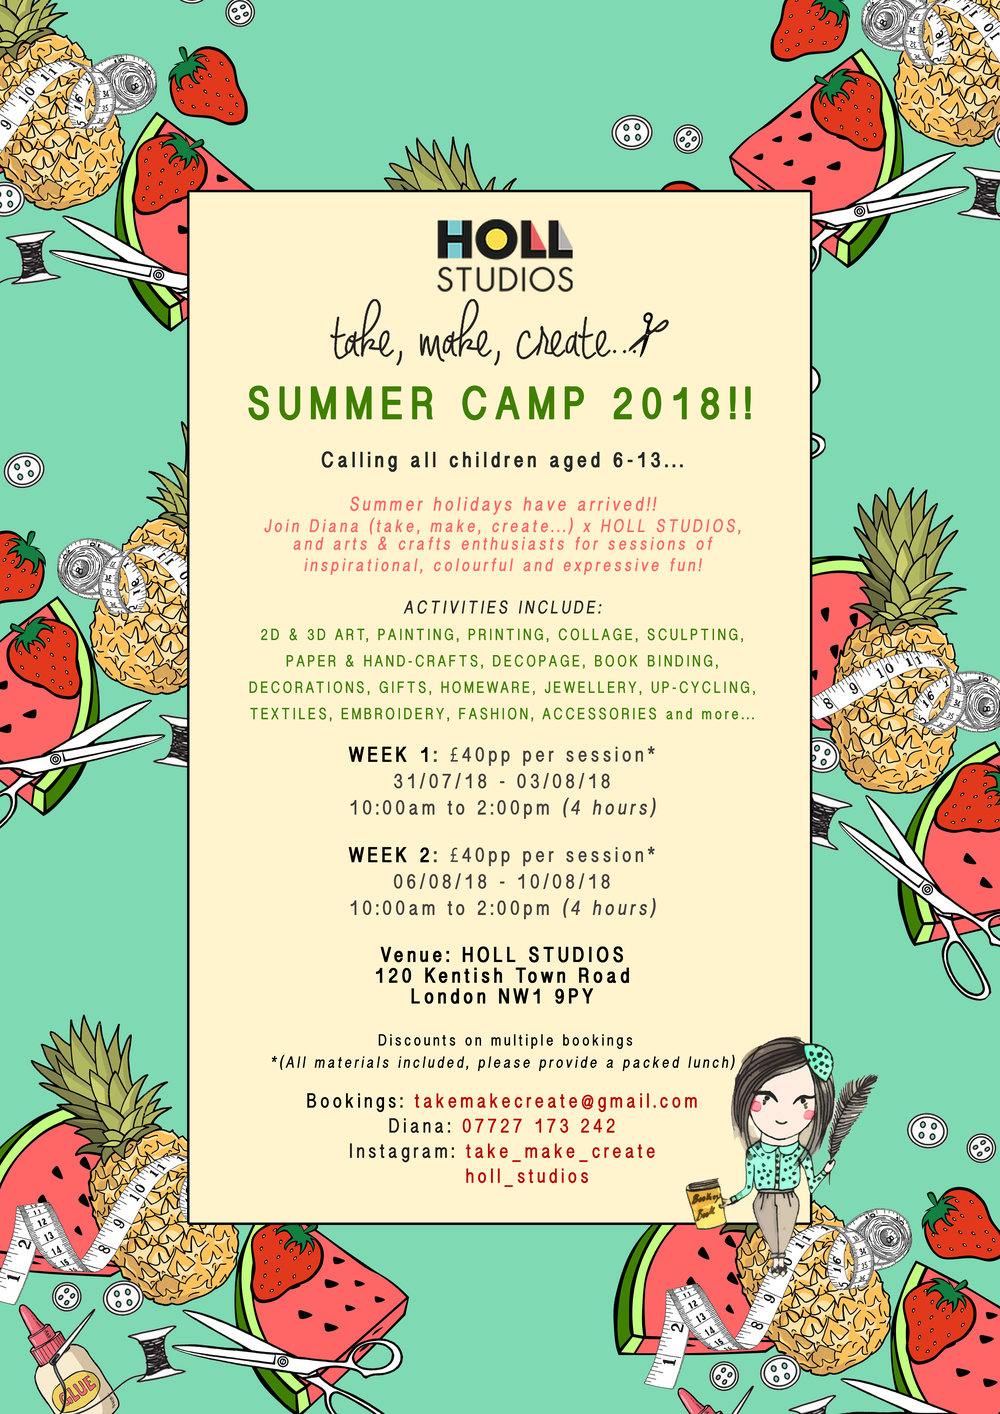 180604 - Holl Studios Summer camp 2018 - A4.jpg